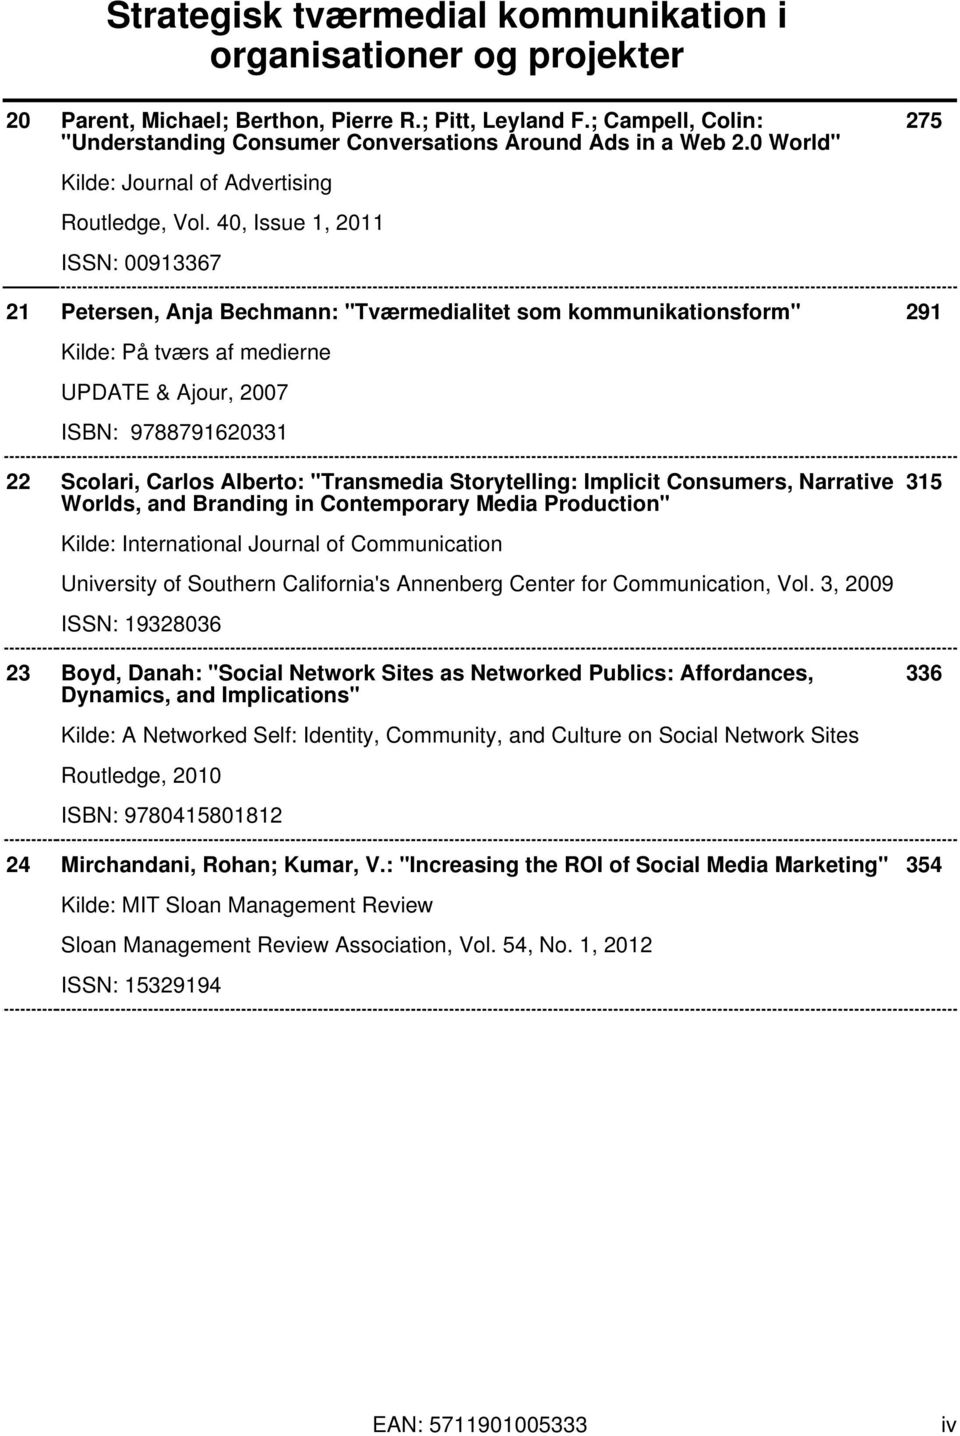 "Alberto: ""Transmedia Storytelling: Implicit Consumers, Narrative Worlds, and Branding in Contemporary Media Production"" 315 Kilde: International Journal of Communication University of Southern"